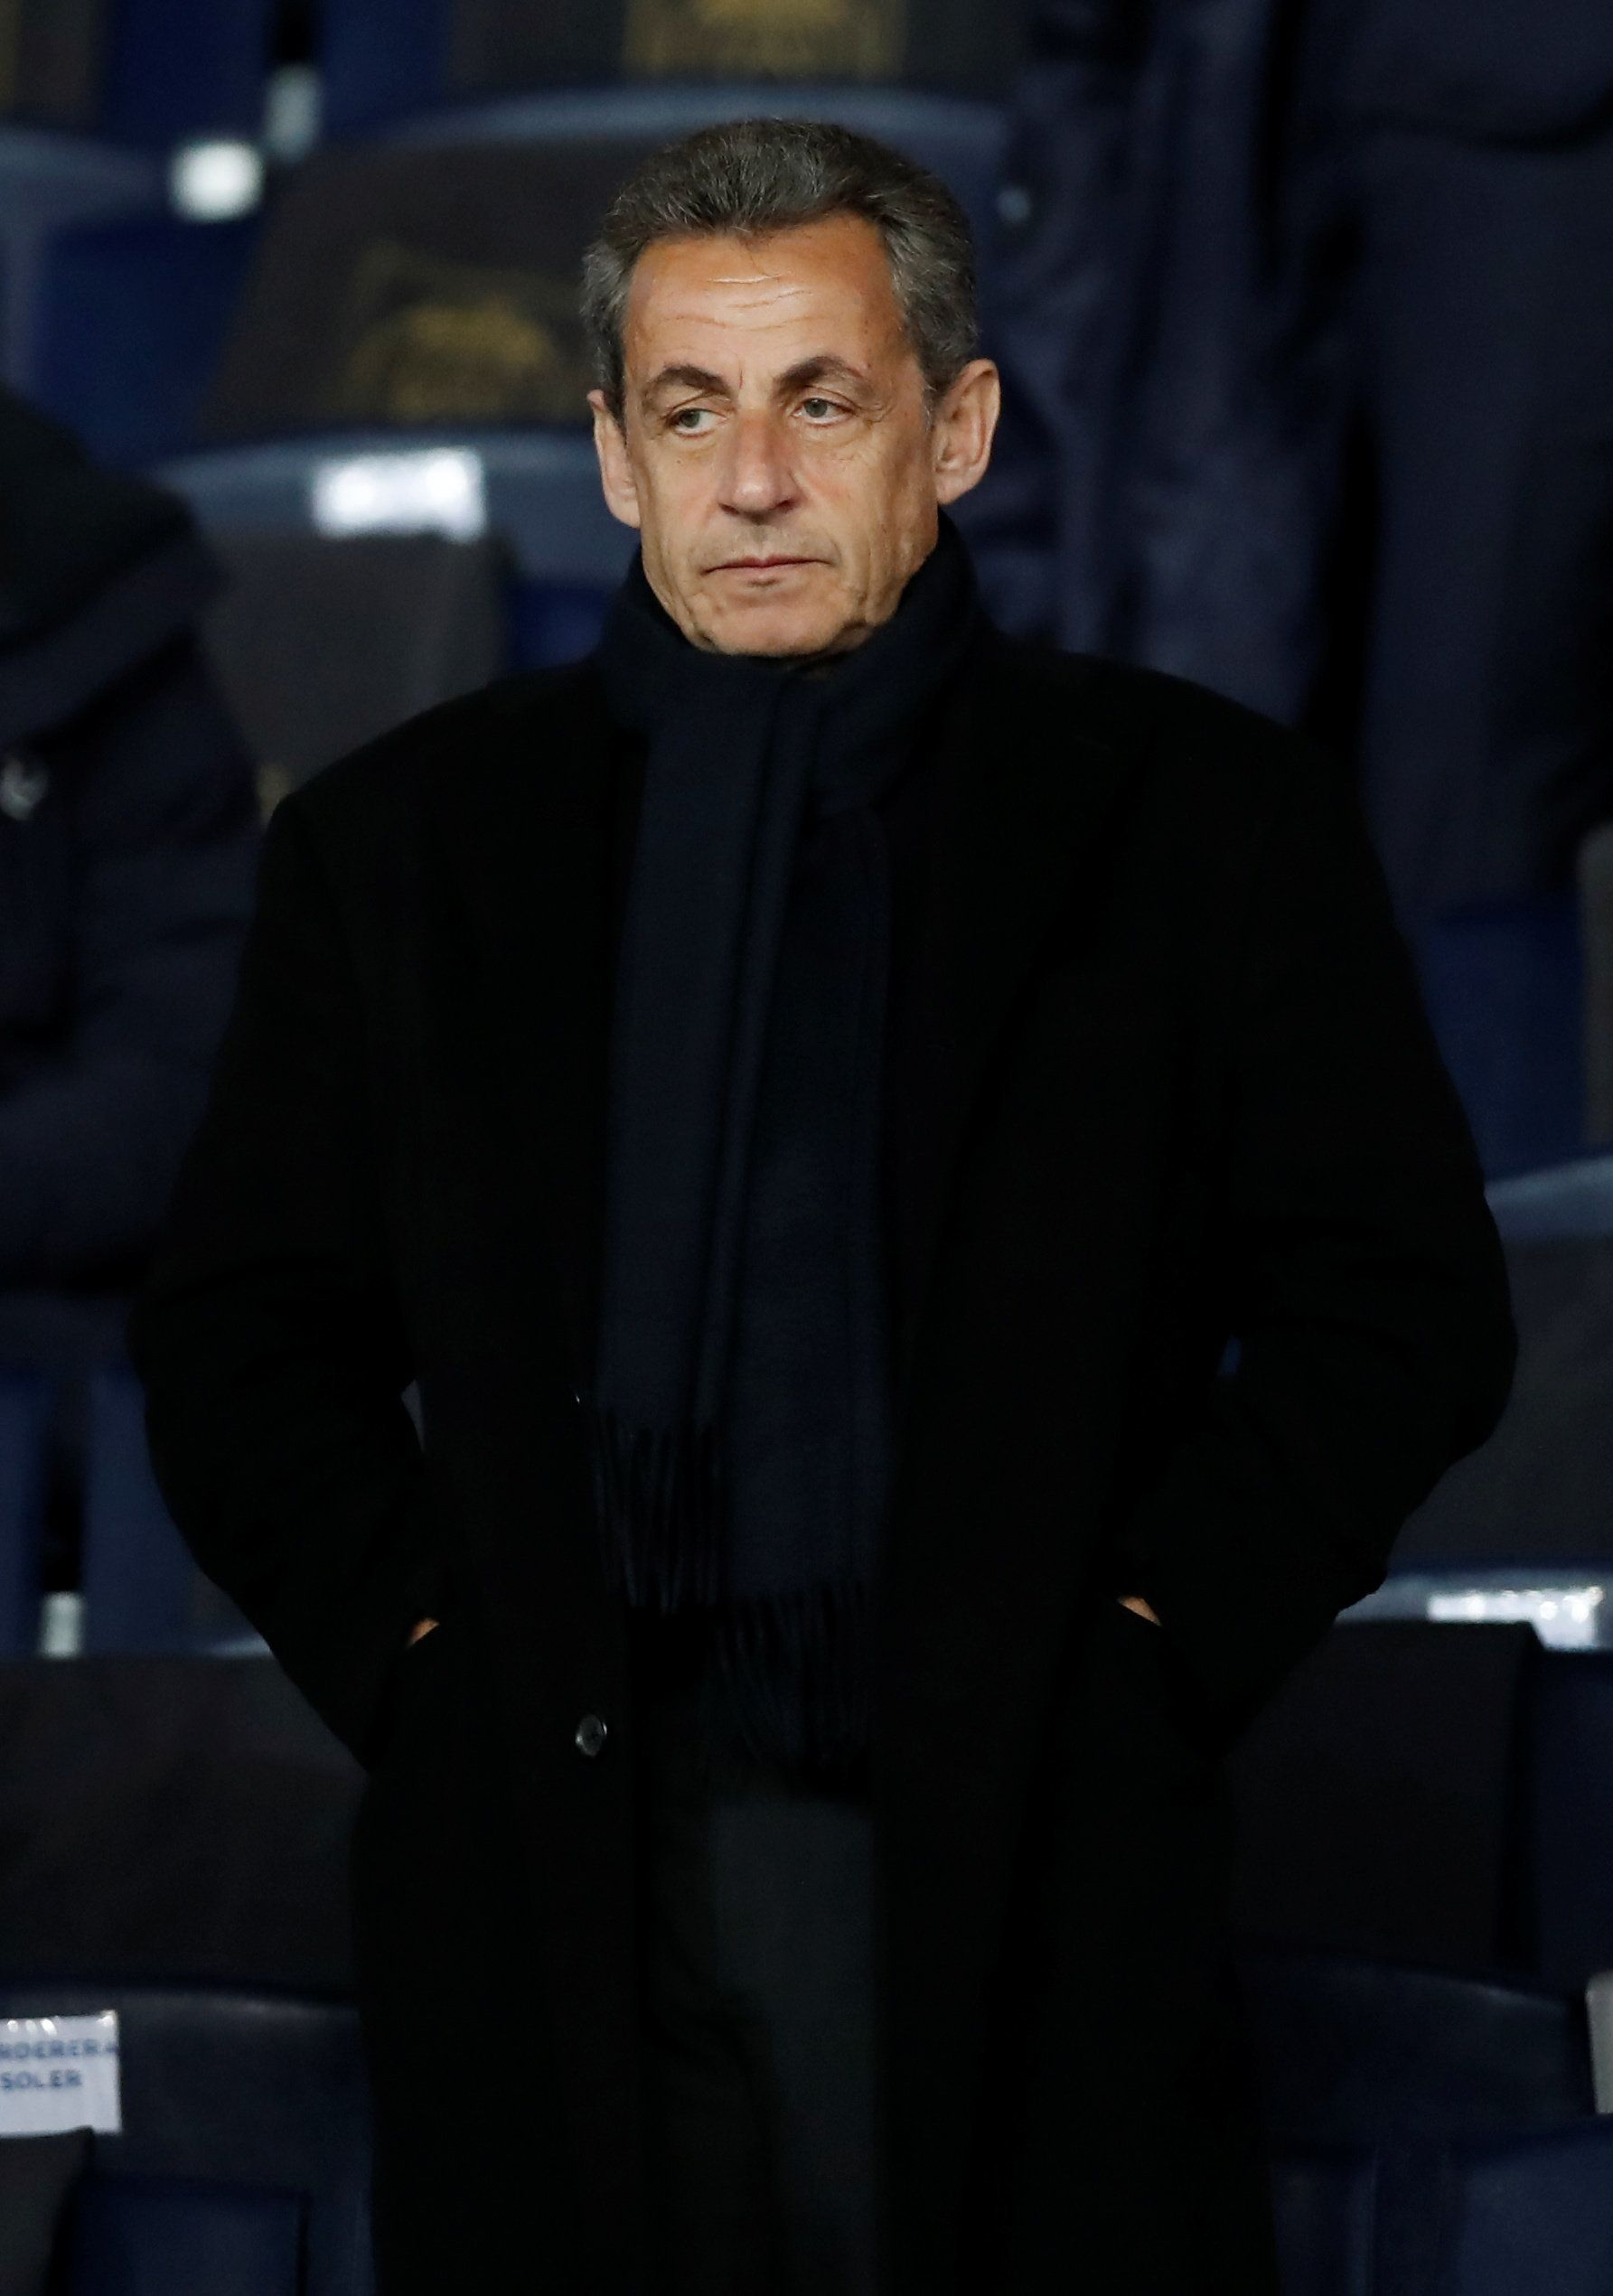 Former French President Nicolas Sarkozy Reportedly In Police Custody, Official Says